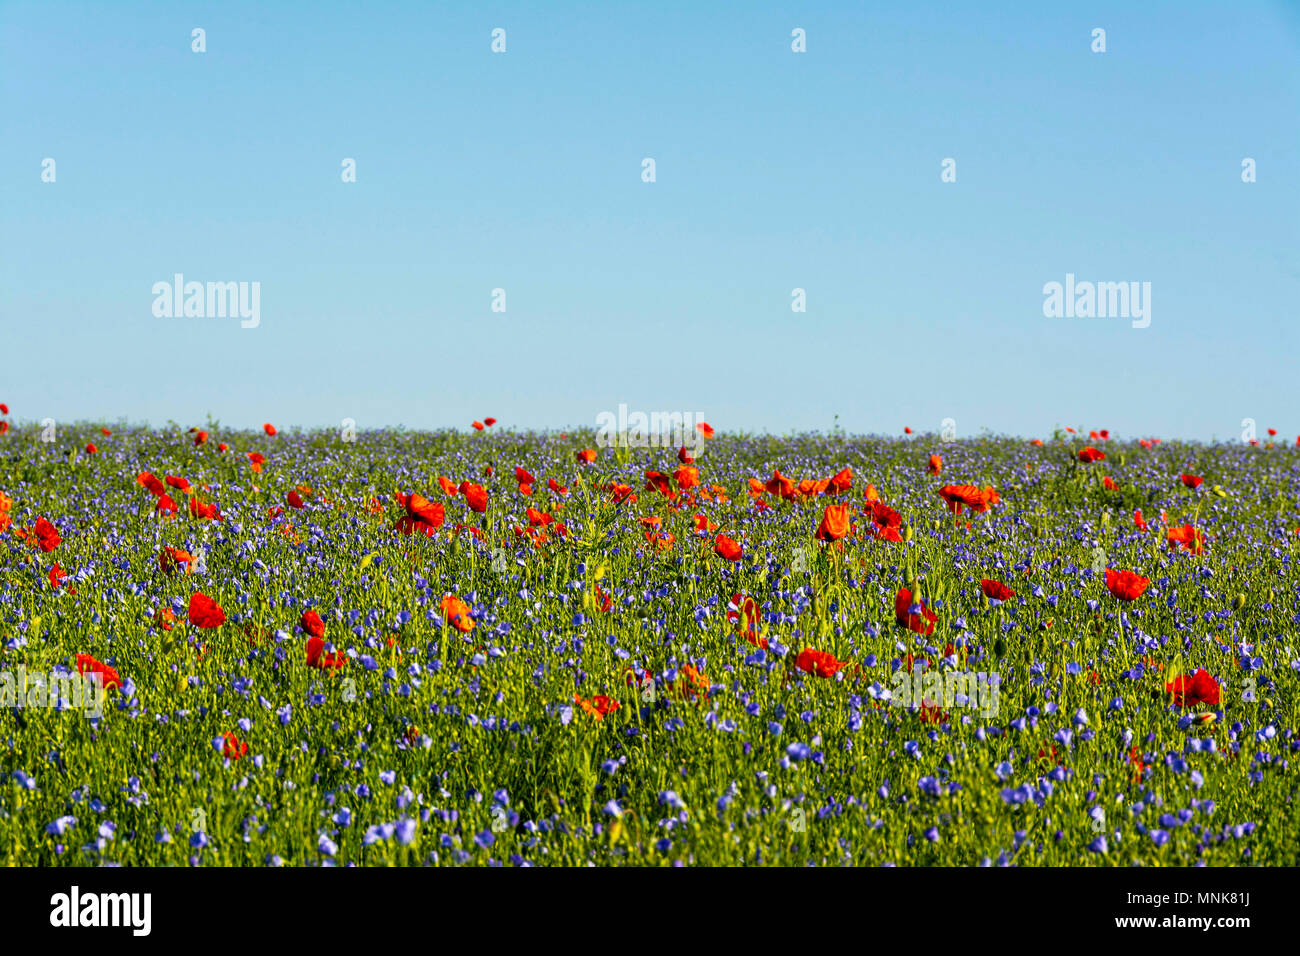 Poppies and flax field (Linum usitatissimum) in flower. Puy de Dome. Auvergne. France - Stock Image